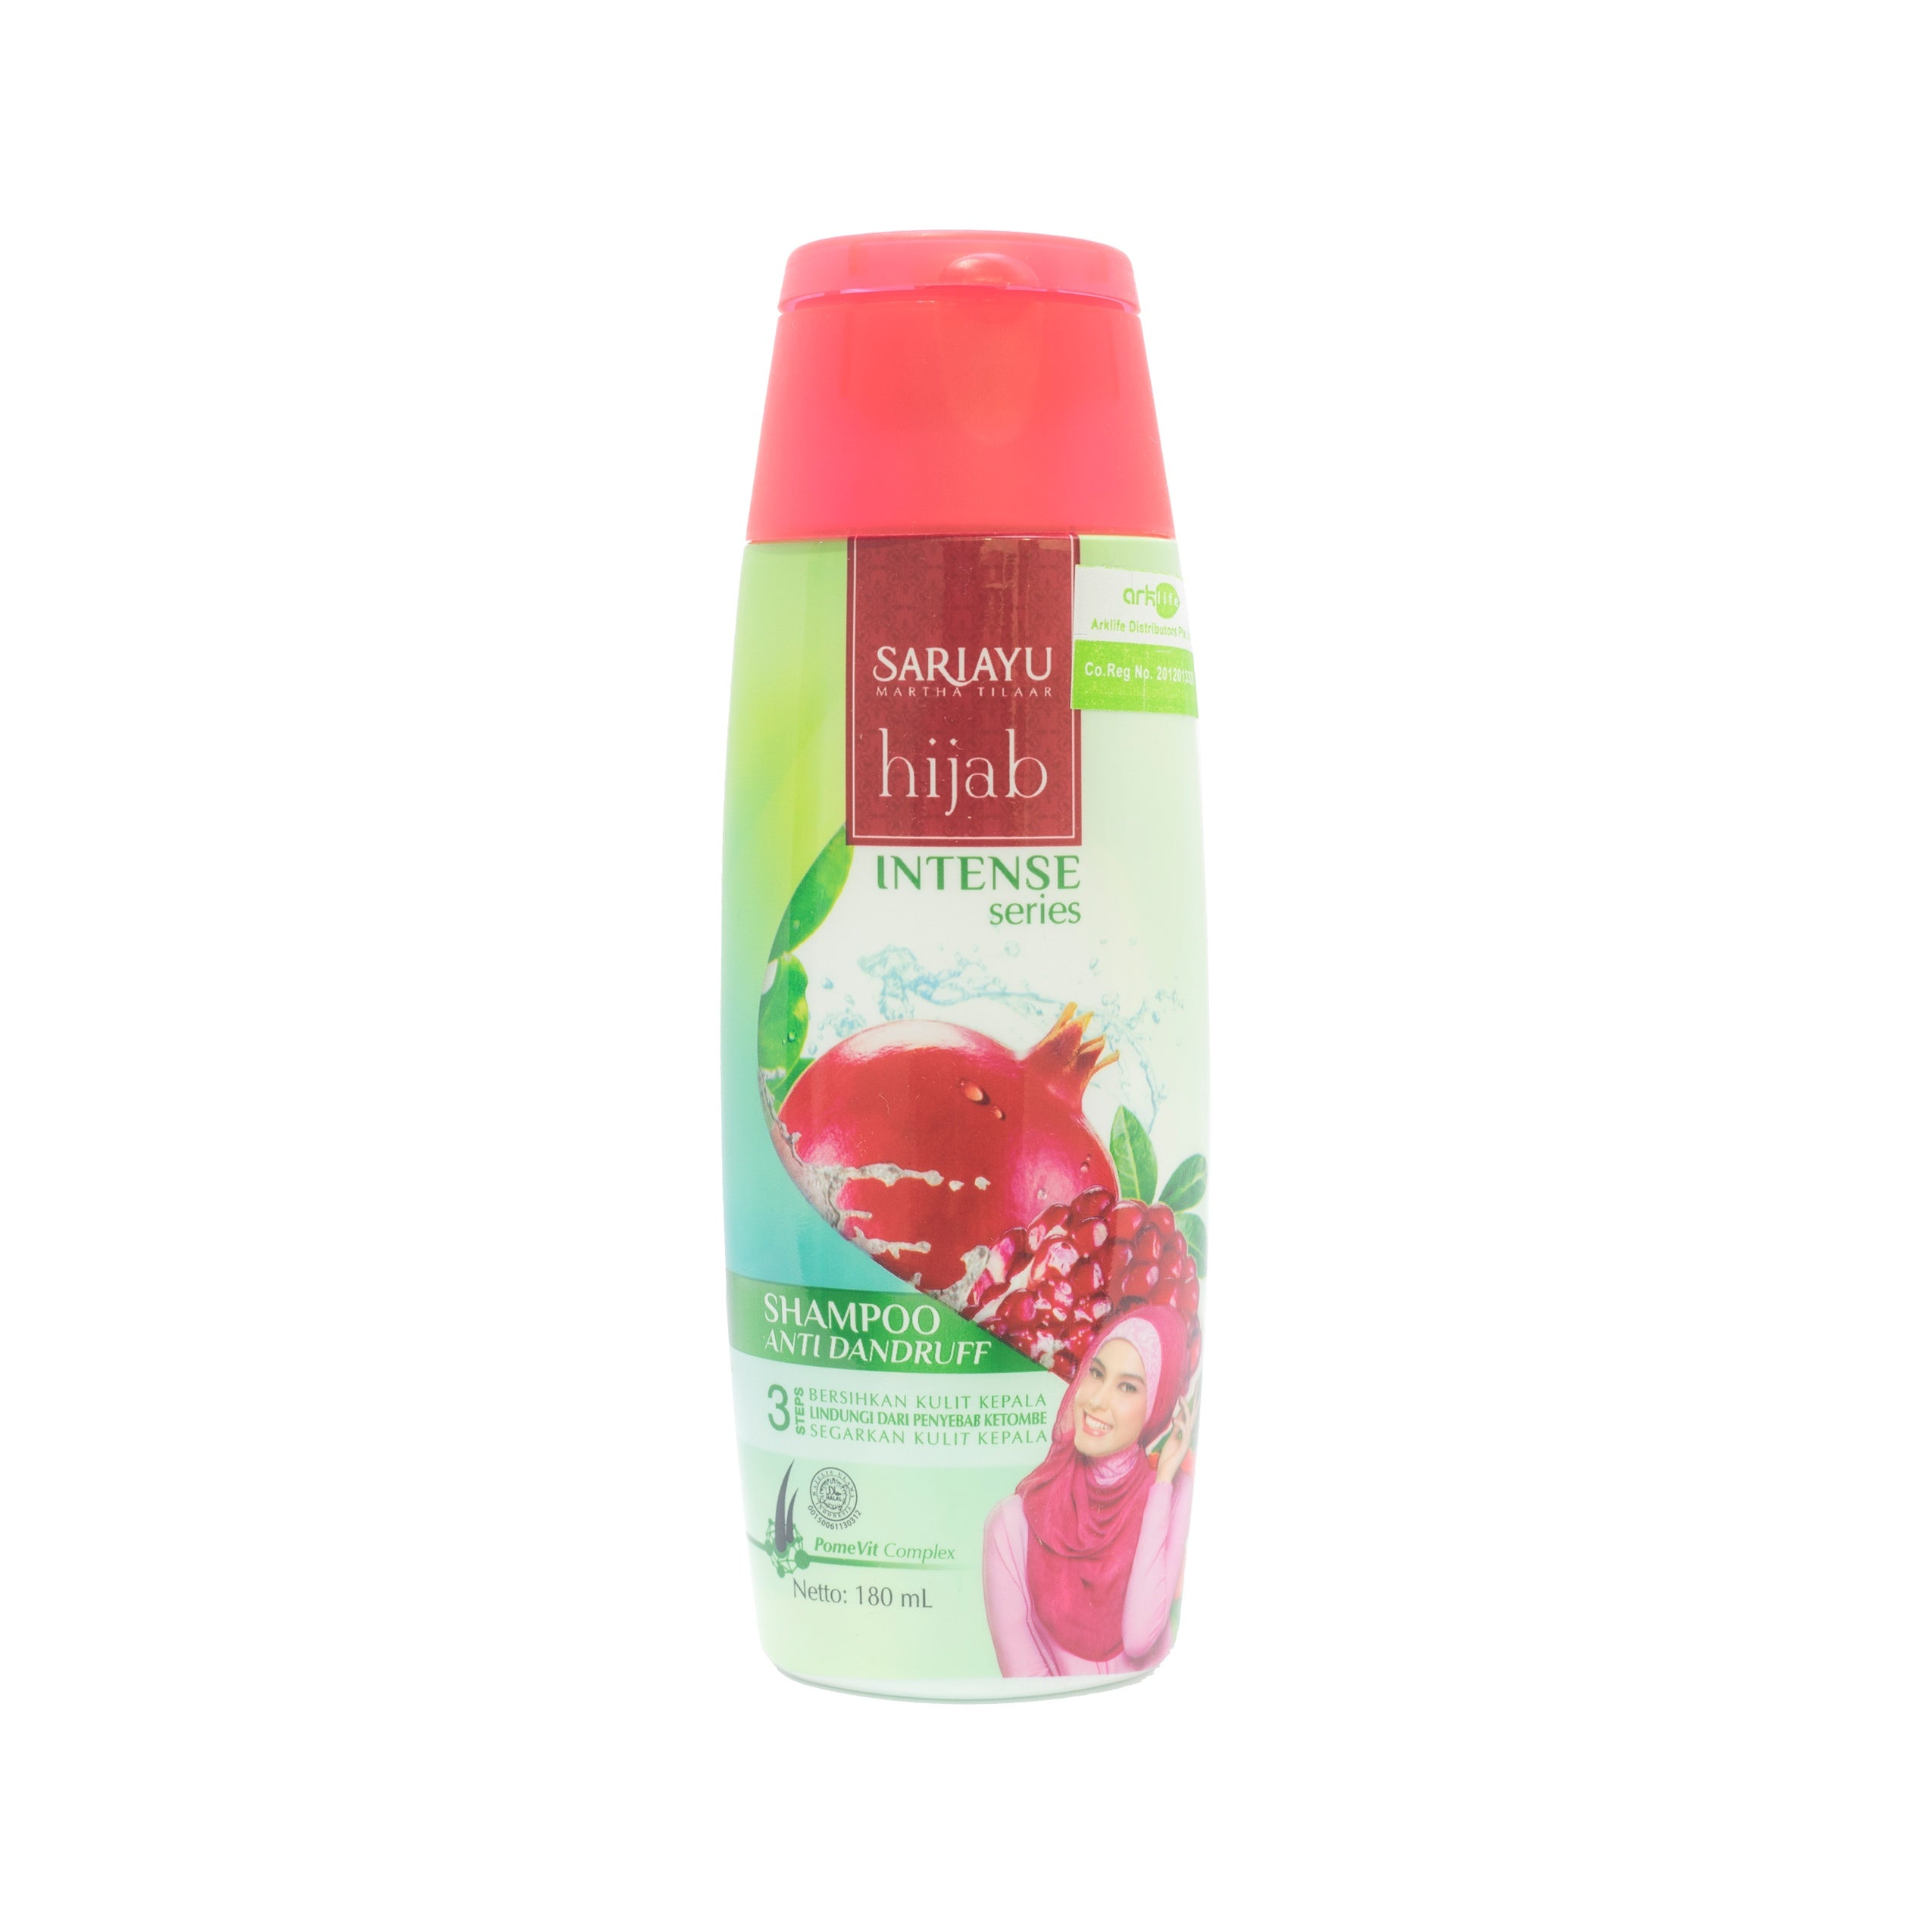 Sariayu, Hijab Intense Series Anti Dandruff Shampoo, 180 ml